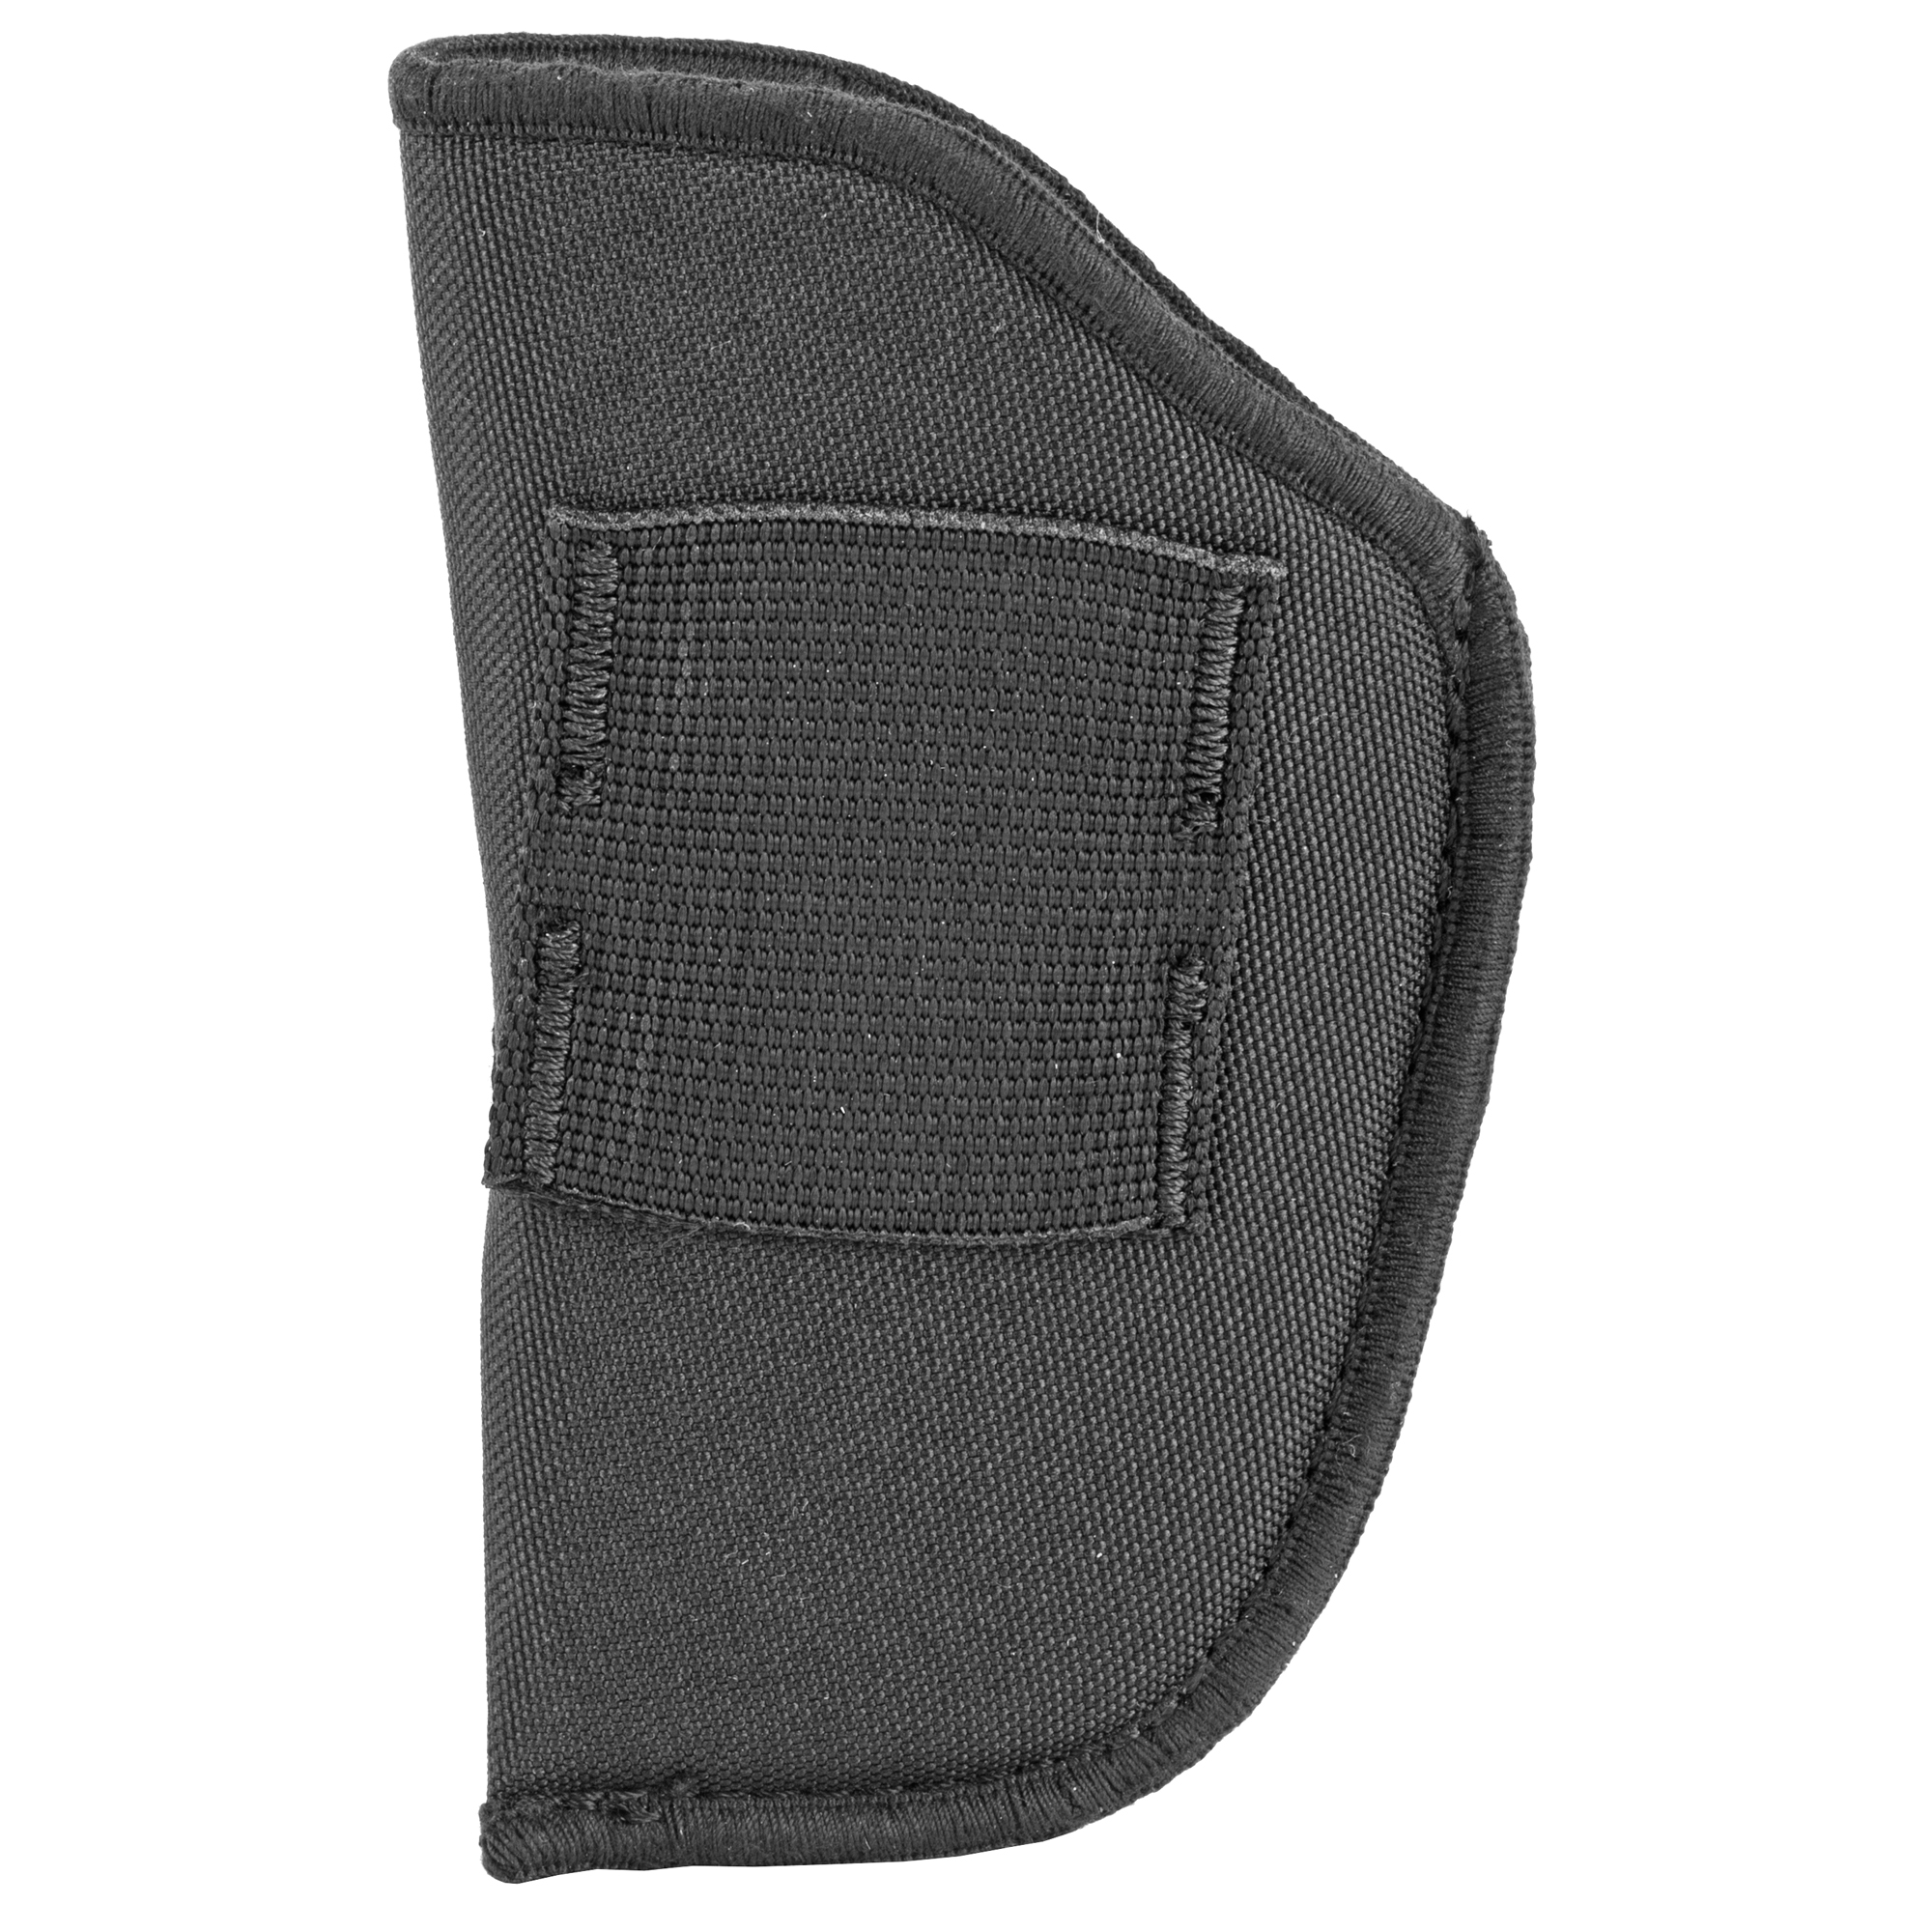 "This inside the pant holster fits small pistols with 2.25"" barrels."